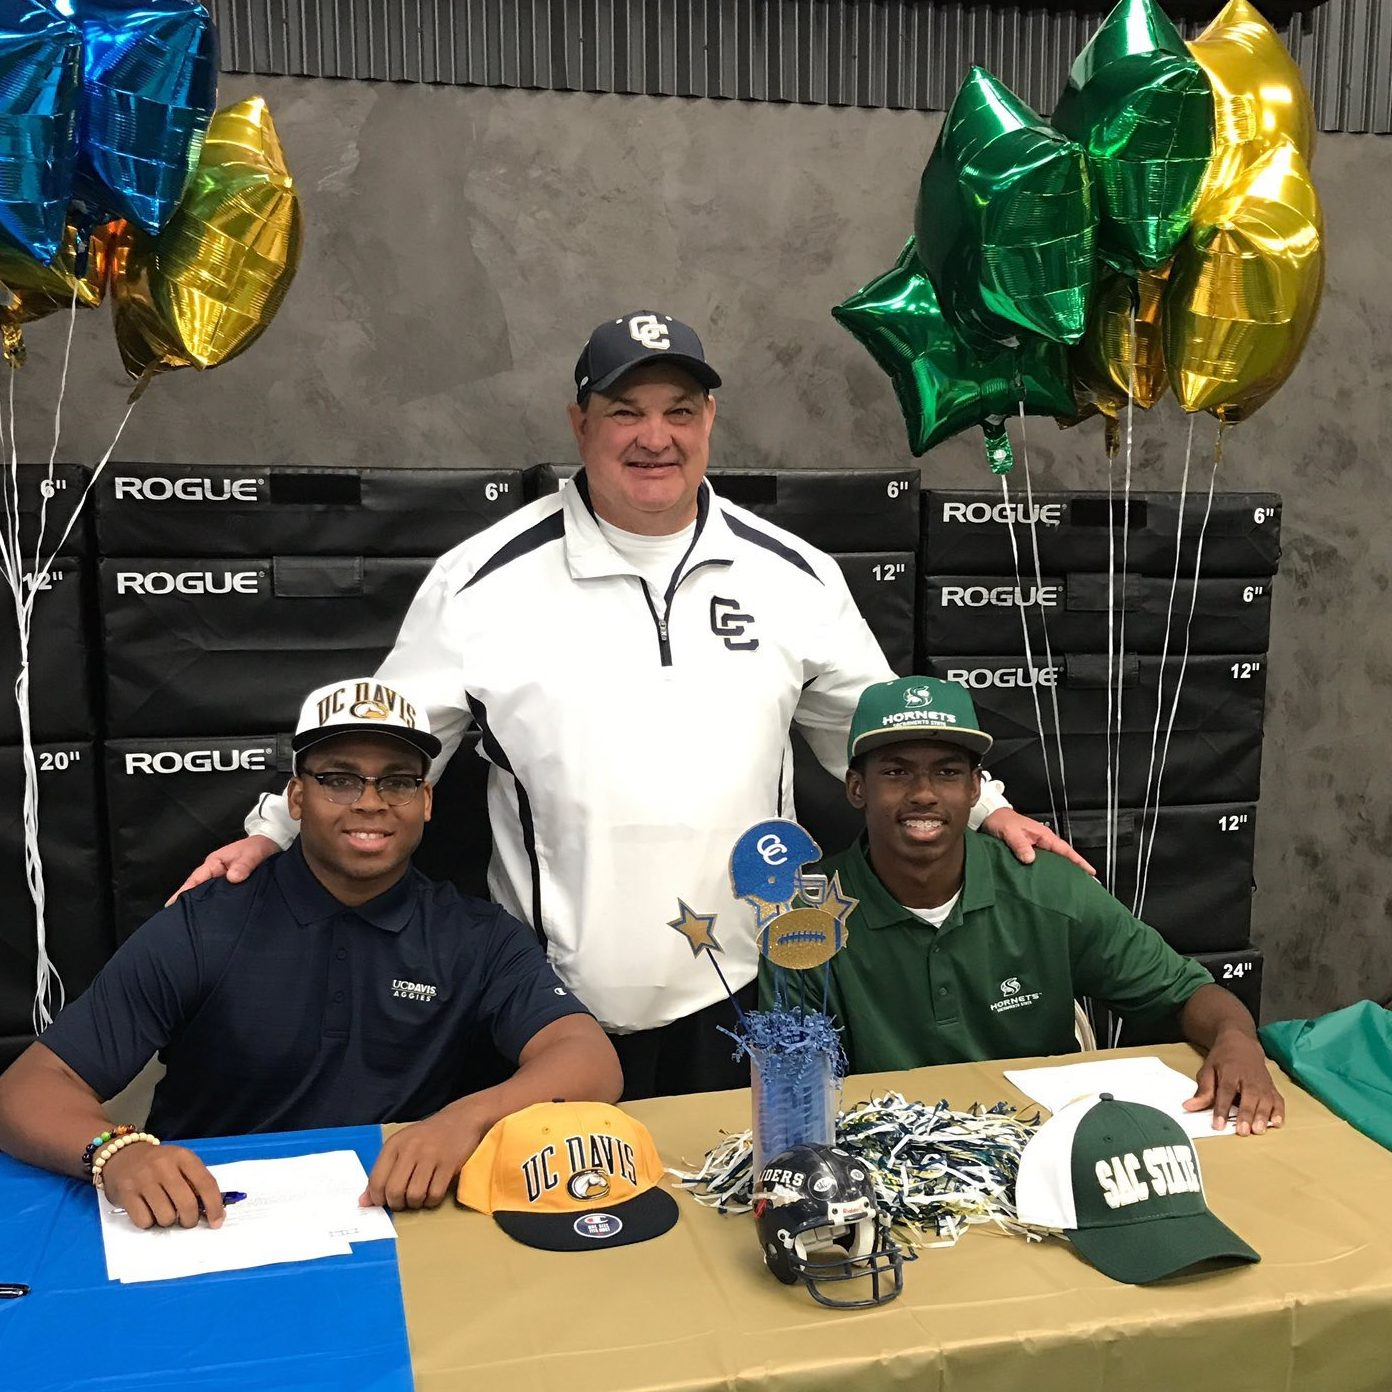 Central Catholic High School seniors Montell and DaRon Bland, with high school football coach Roger Canepa by their side, signed their letter of intent on Feb. 1 to attend UC Davis and Sacramento State, respectively, in the fall of 2017. (Photo courtesy of Brett Butler/The Performance Lab)